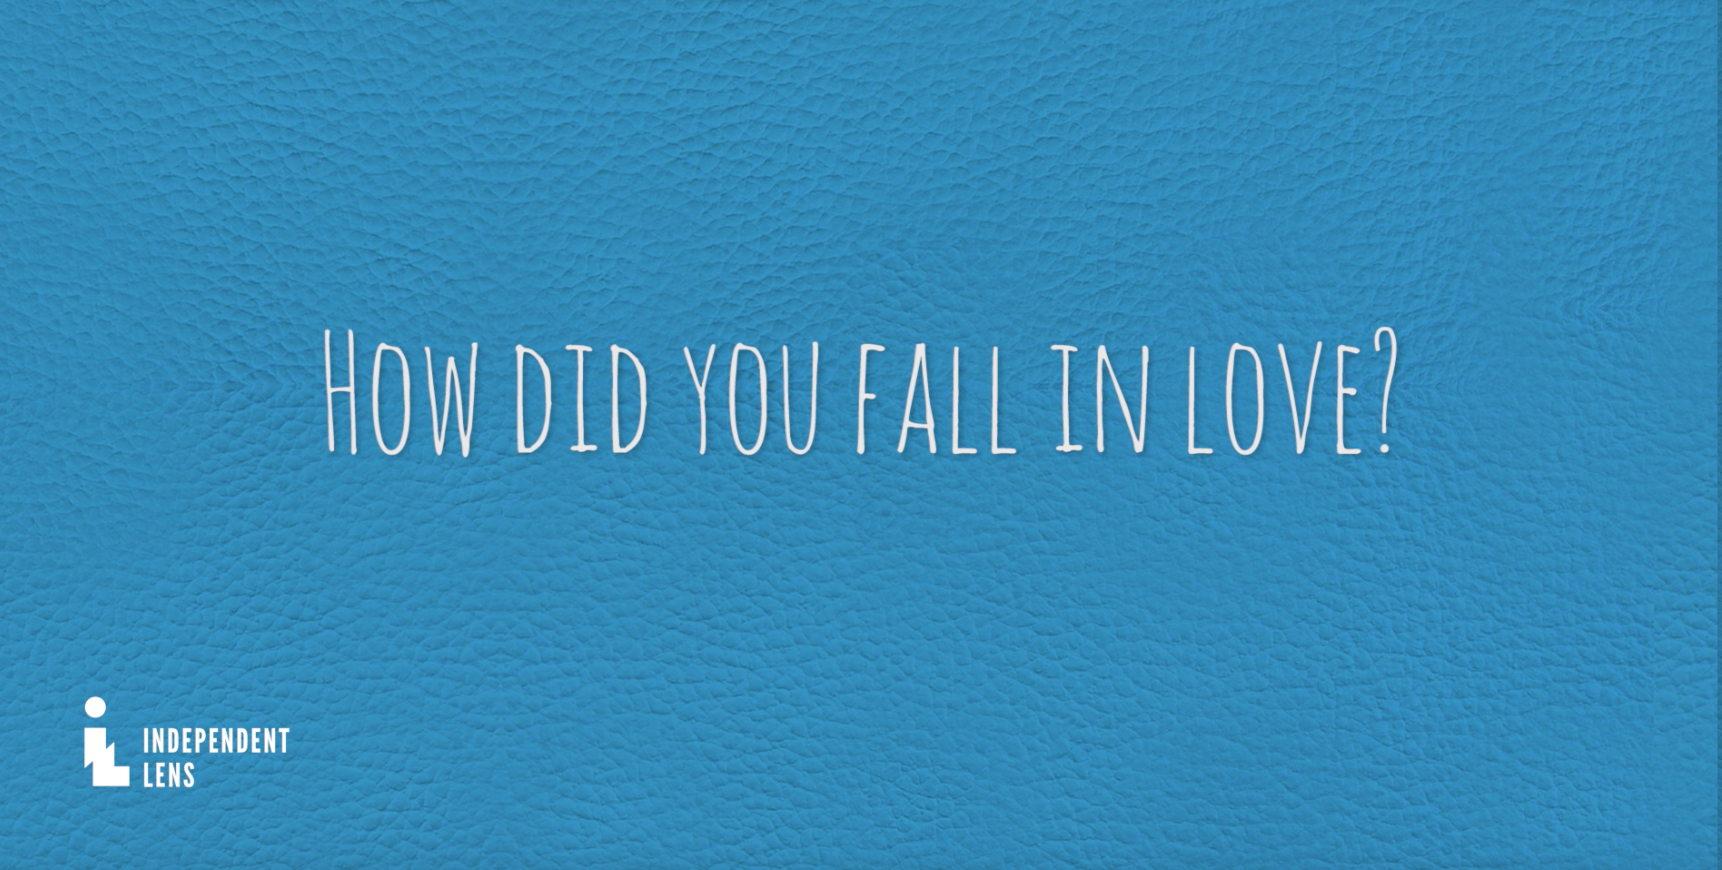 How Did You Fall in Love? a title card, and key question from new interview with Champa and Vasant, parents of Geeta and Ravi Patel